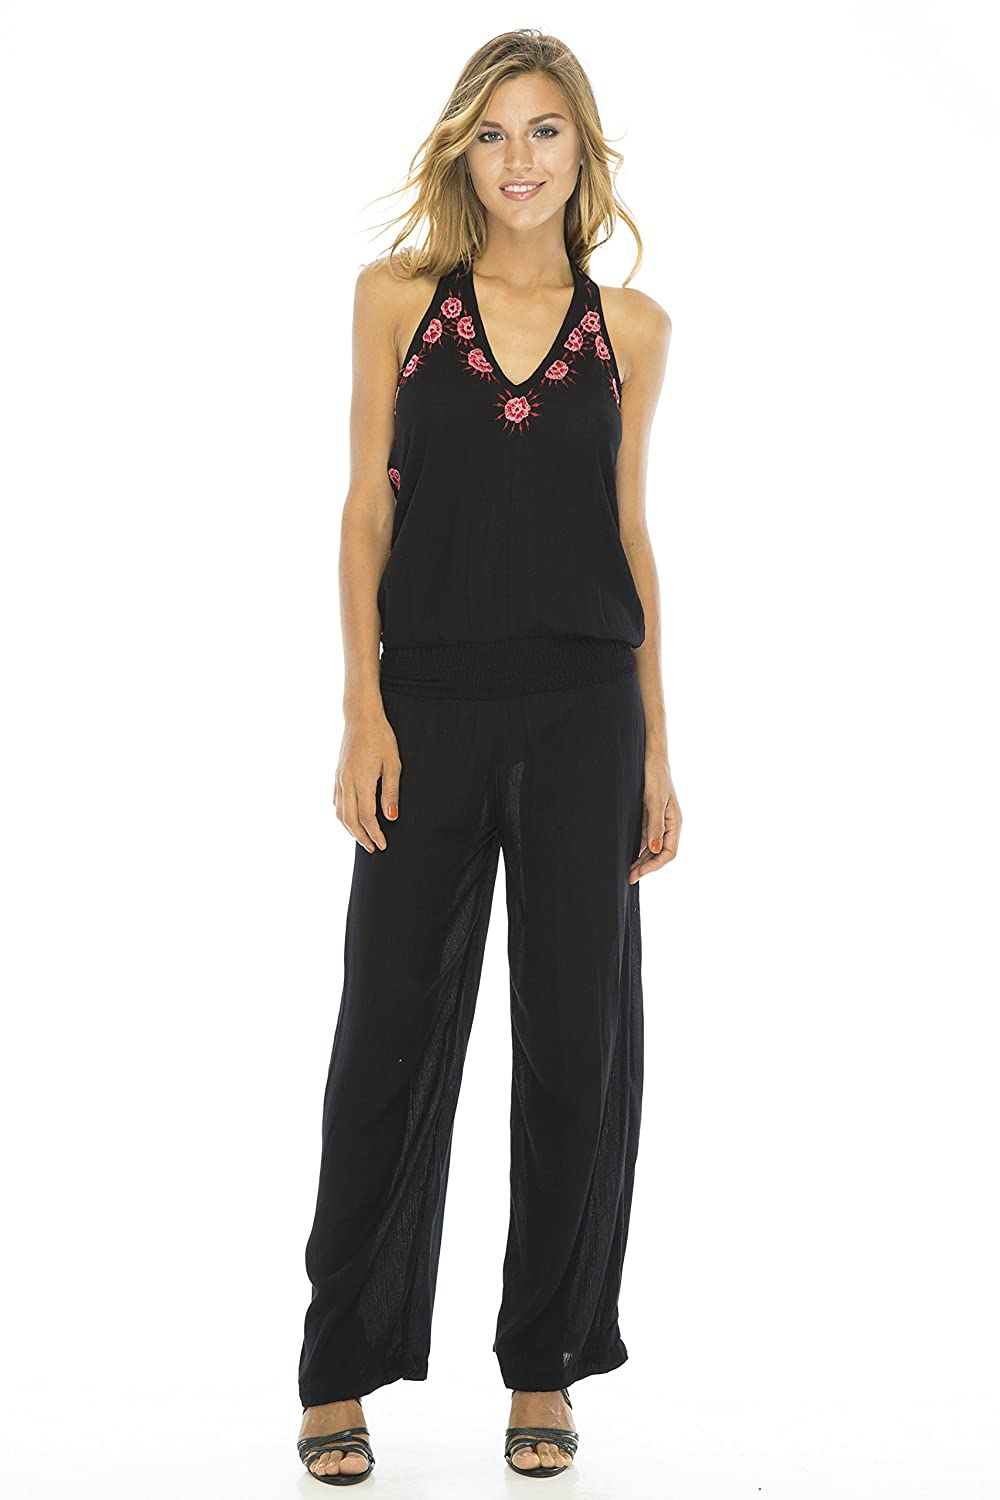 Back From Bali Womens Jumpsuit Long Boho Embroidered Halter Sleeveless Low Back